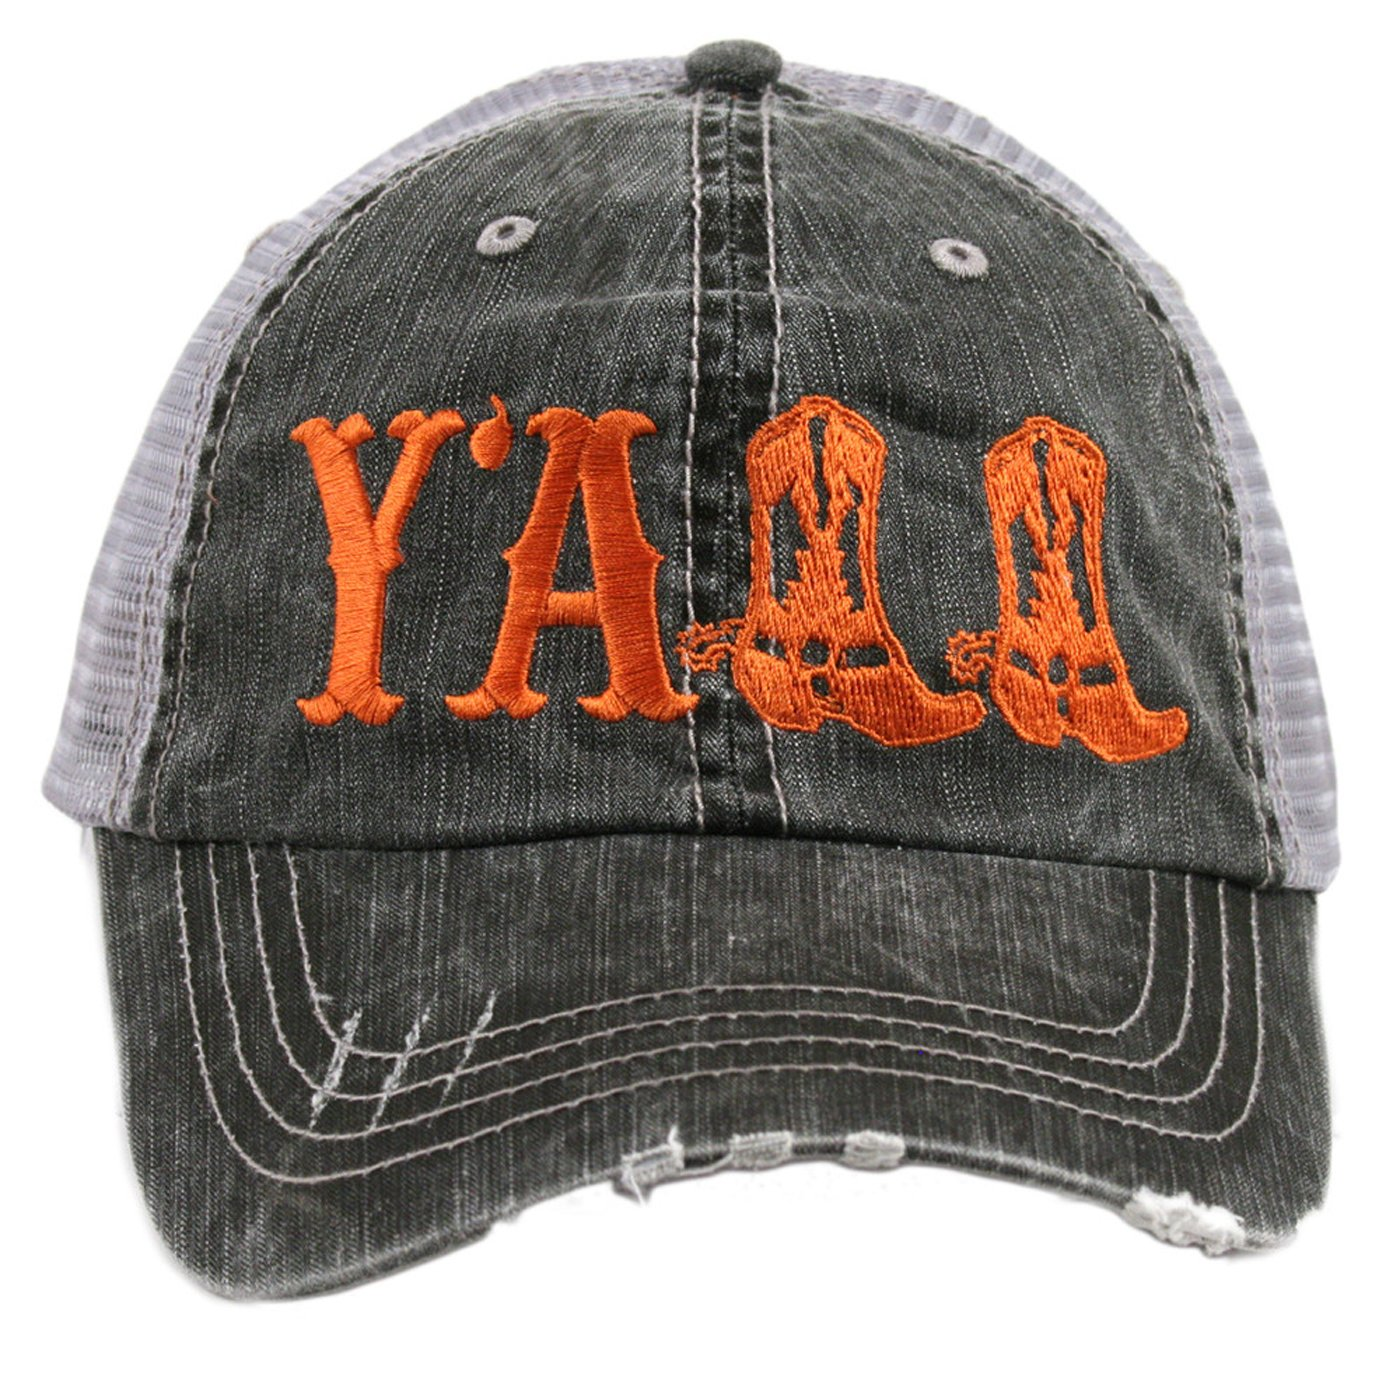 Y'ALL Women's Distressed Southern Country Trucker Hat (Orange)